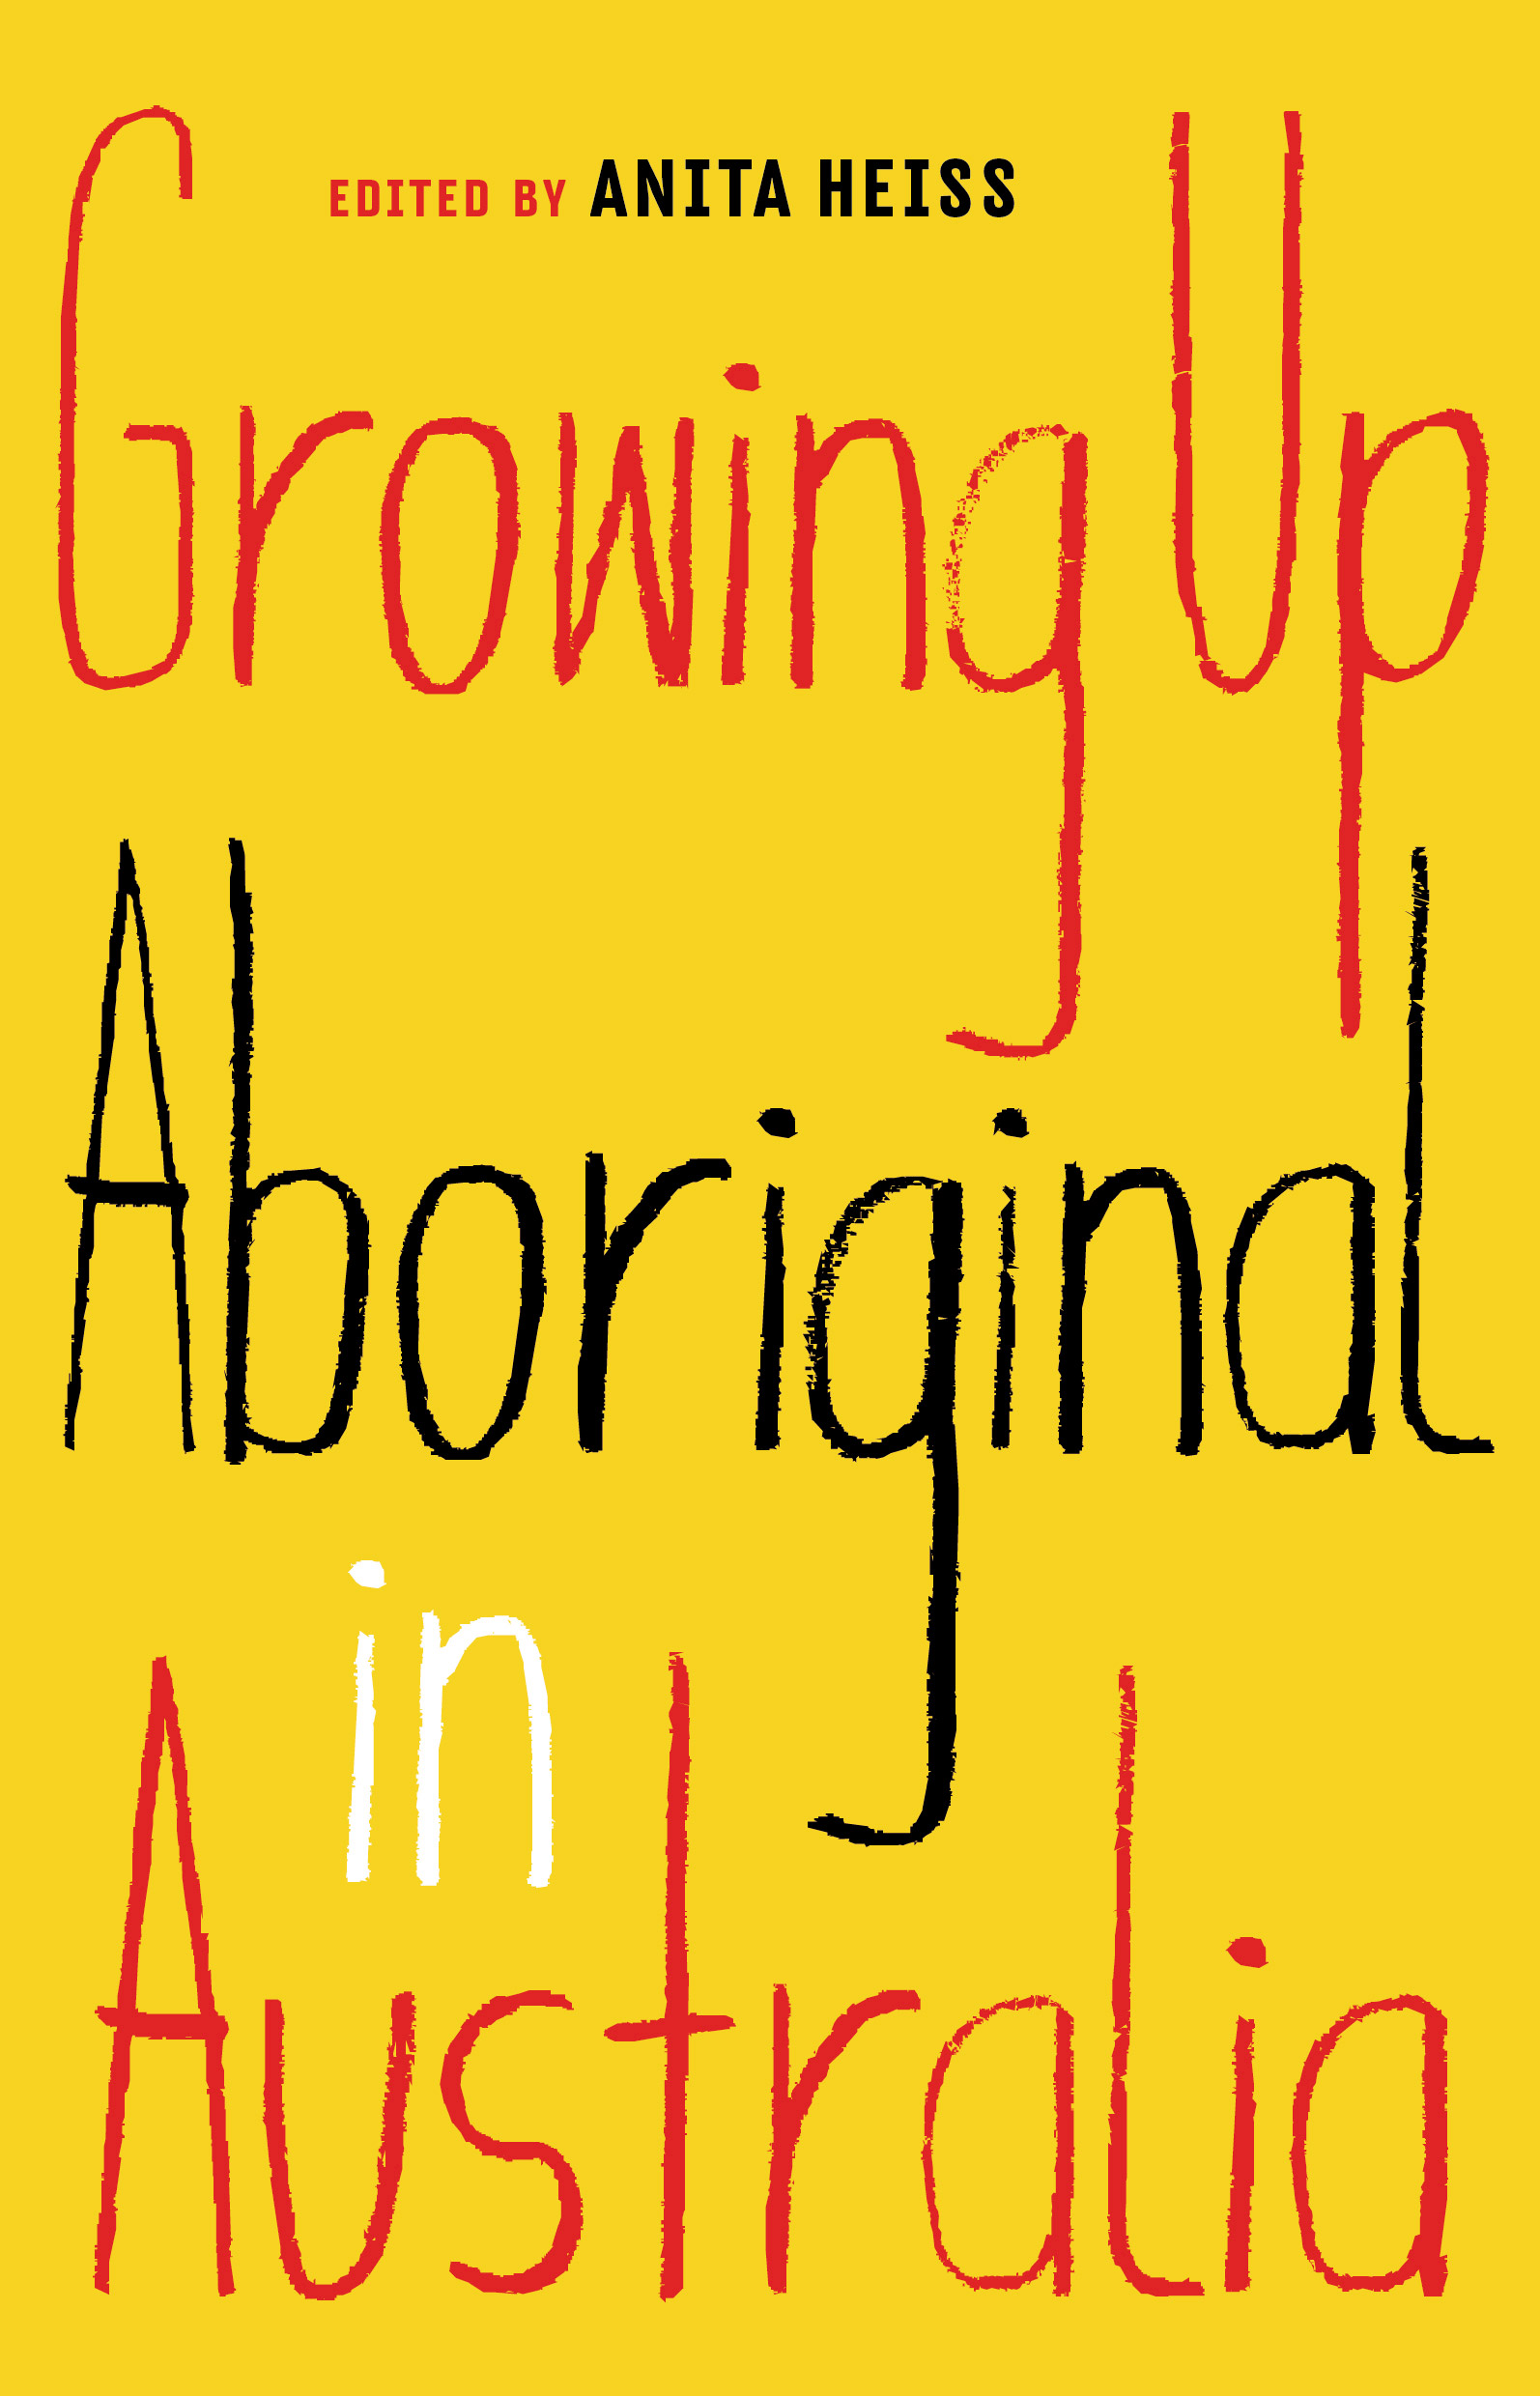 Growing Up Aboriginal in Australia, edited by Anita Heiss (Black Inc.)